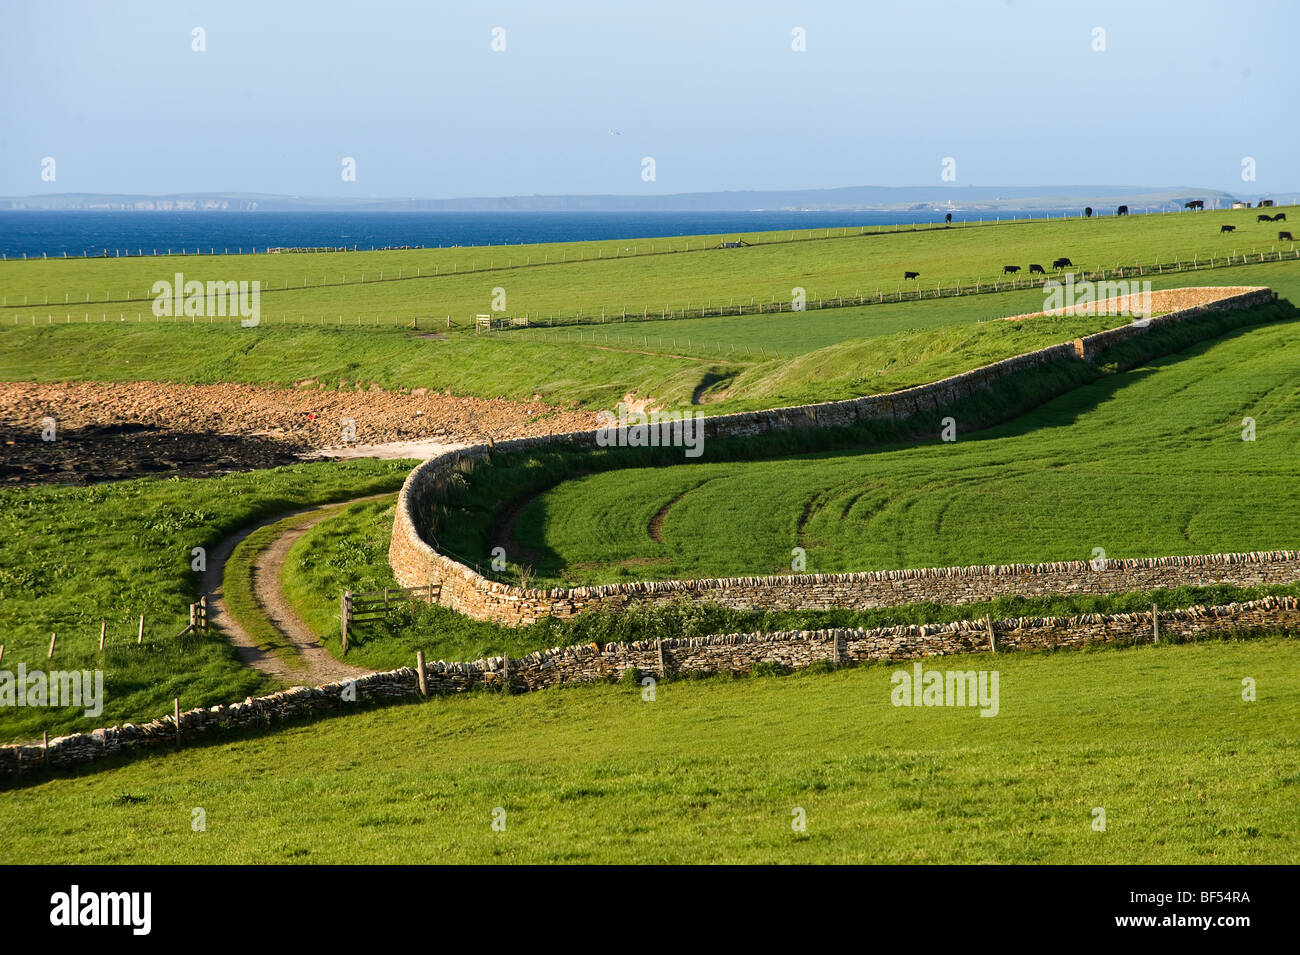 Sheep pastures in Caithness County, Scotland, United Kingdom, Europe - Stock Image